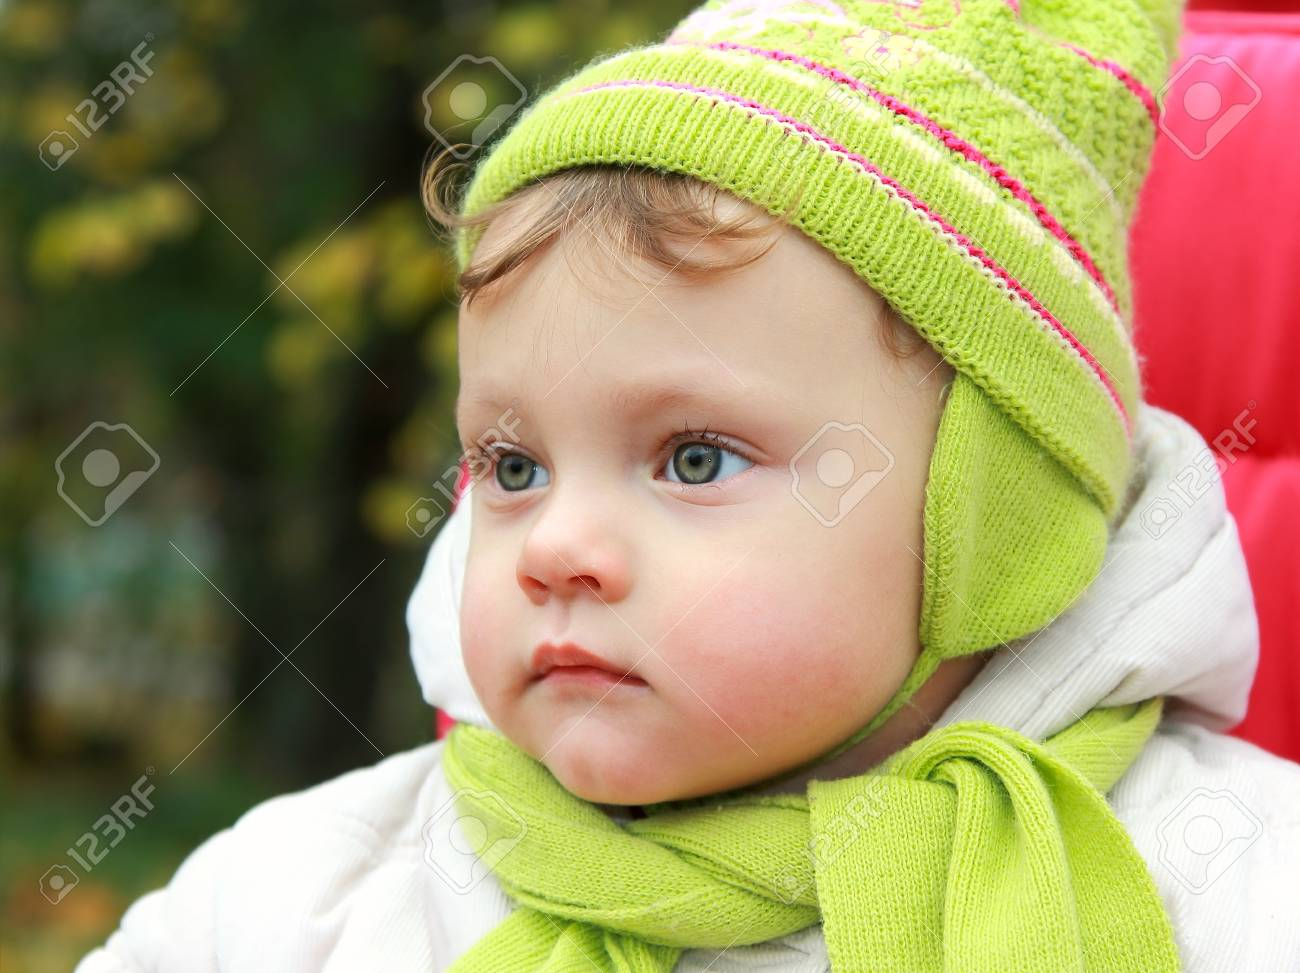 Closeup portrait of serious baby looking in hat and scarf on autumn background Stock Photo - 15866162